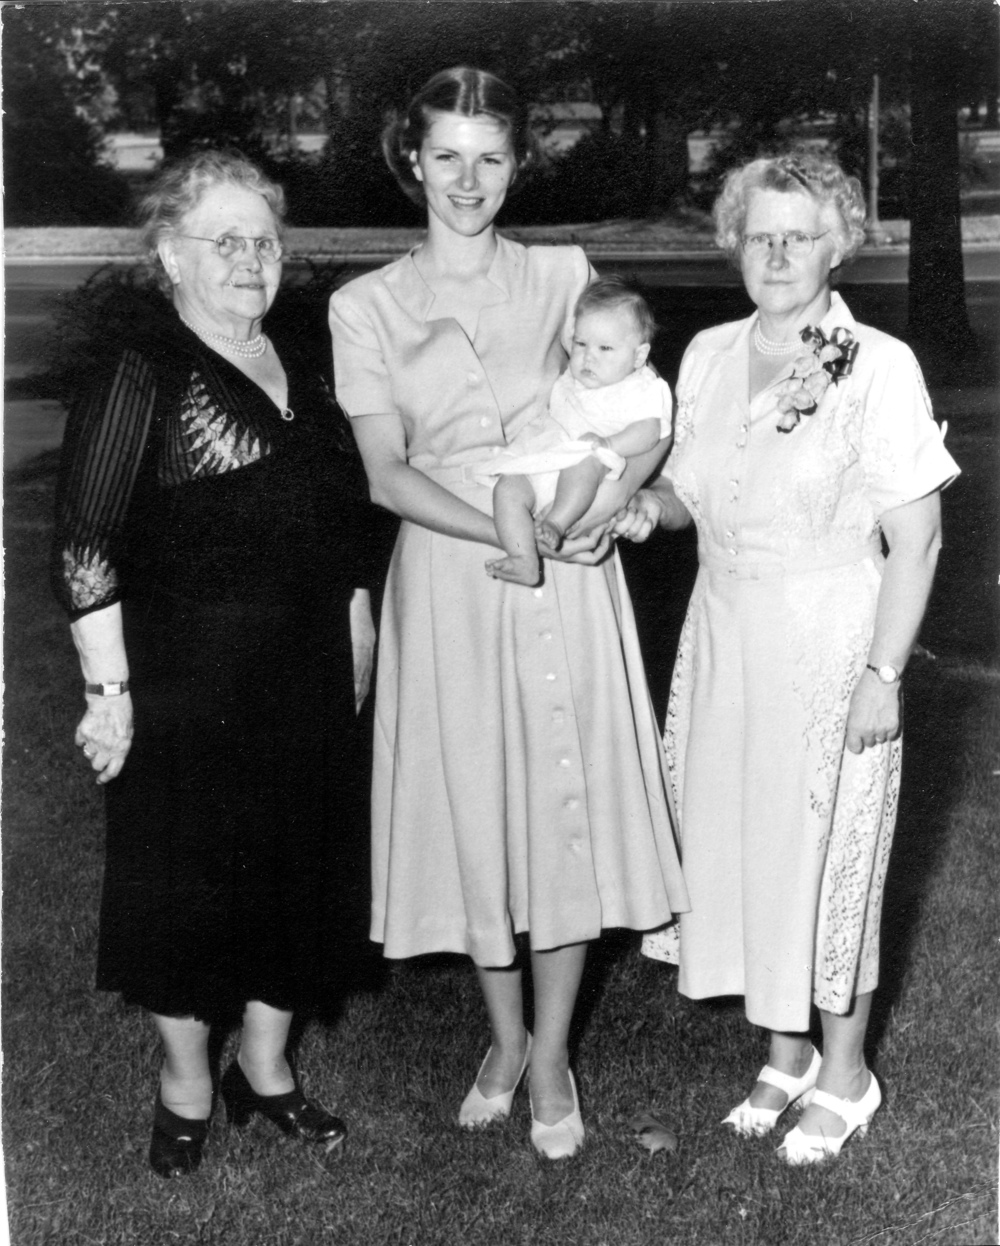 Four matrilineal generations